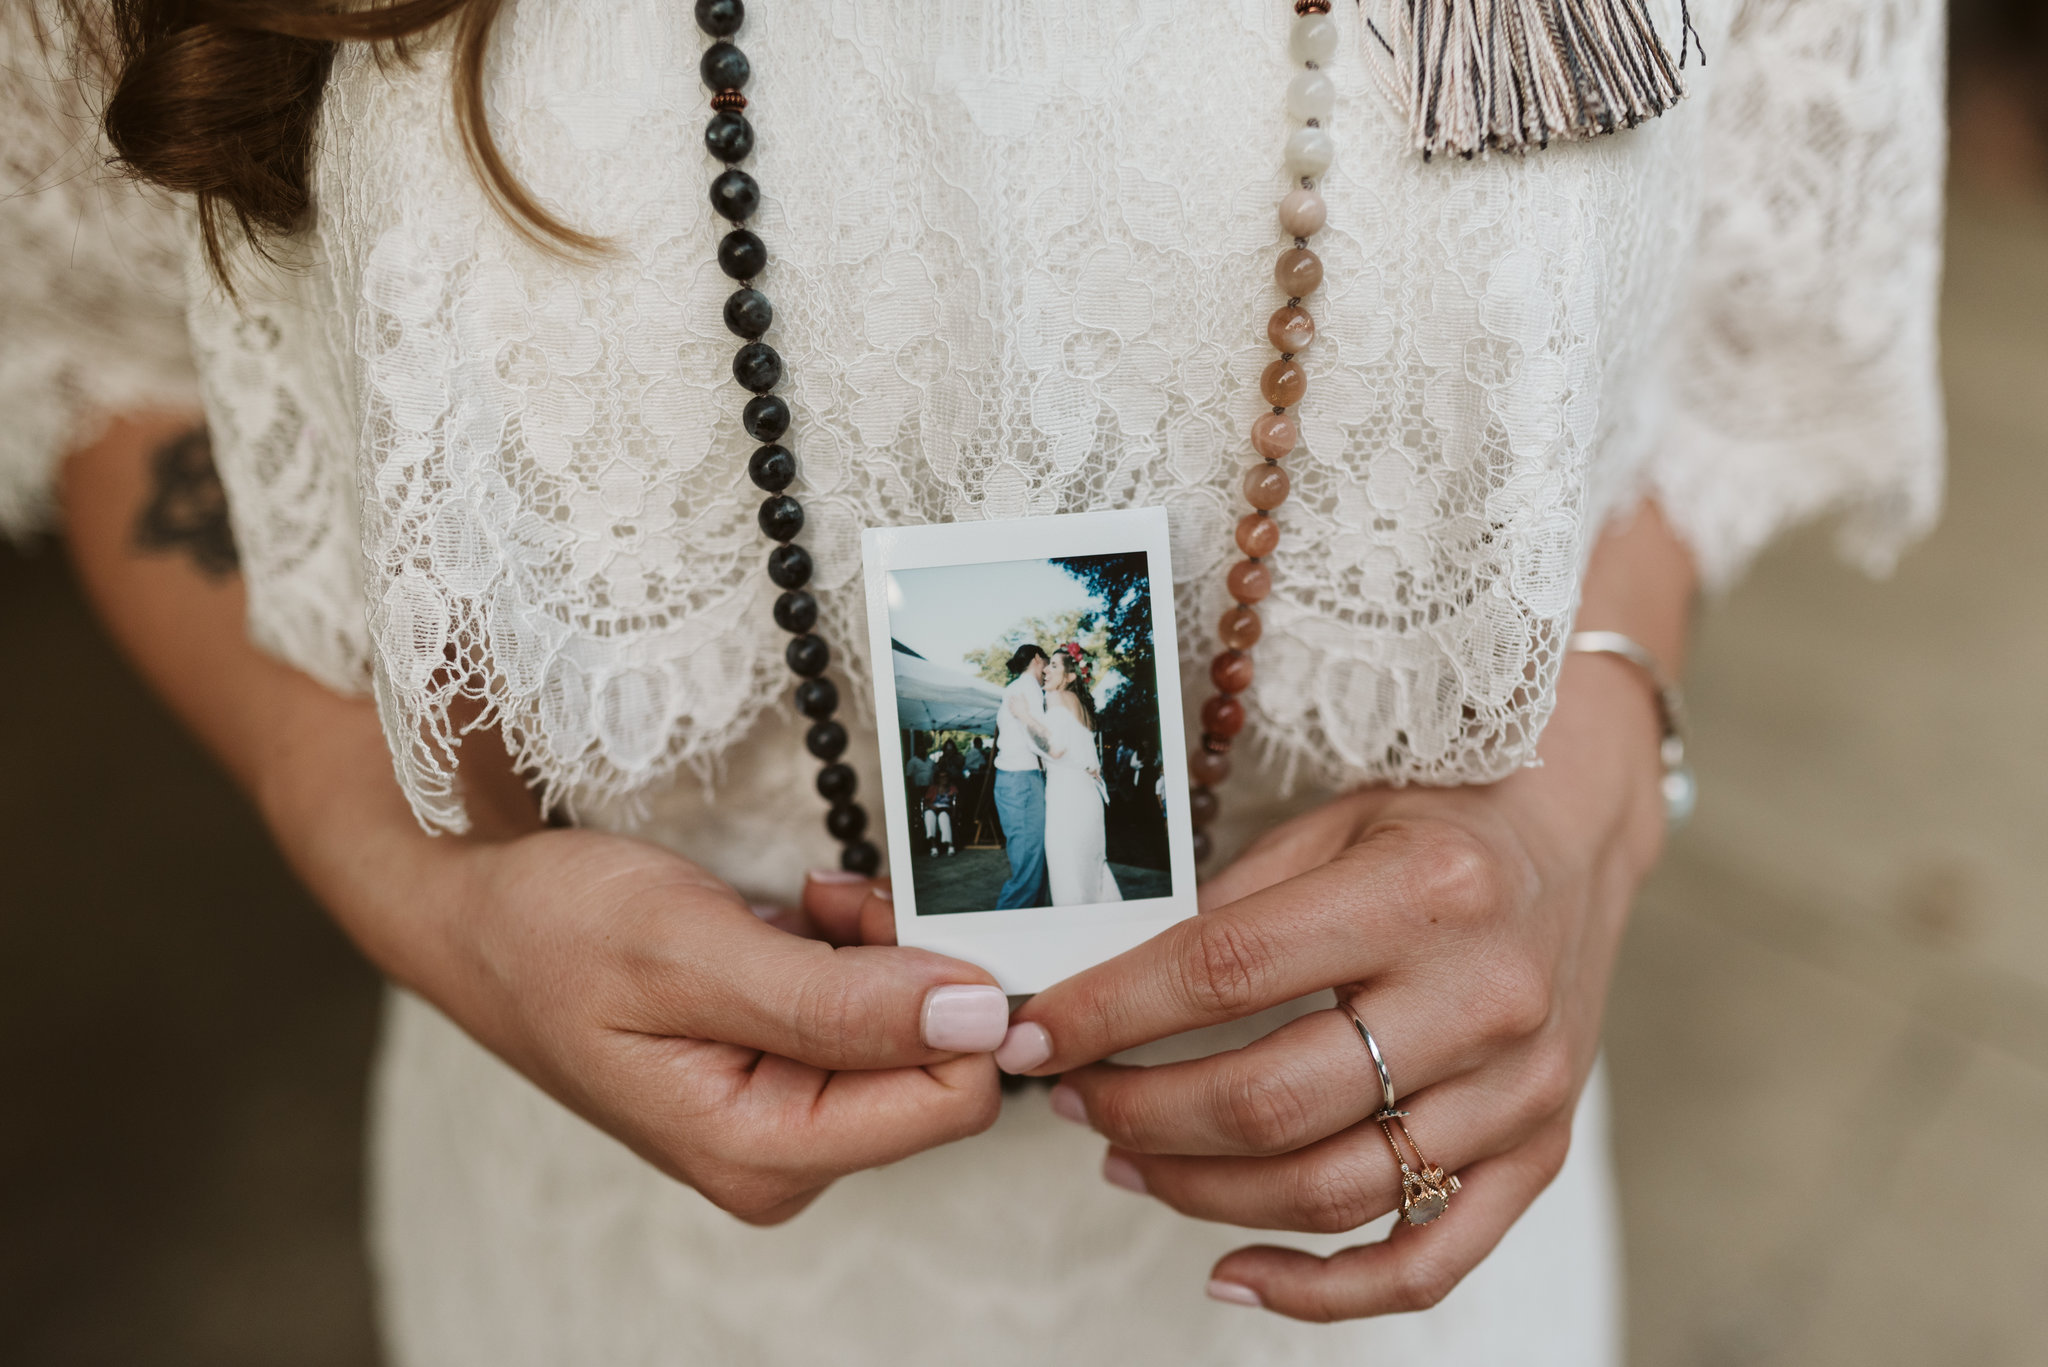 Annapolis, Quaker Wedding, Maryland Wedding Photographer, Intimate, Small Wedding, Vintage, DIY, Bride Holding Polaroid, First Dance, Sweet photo